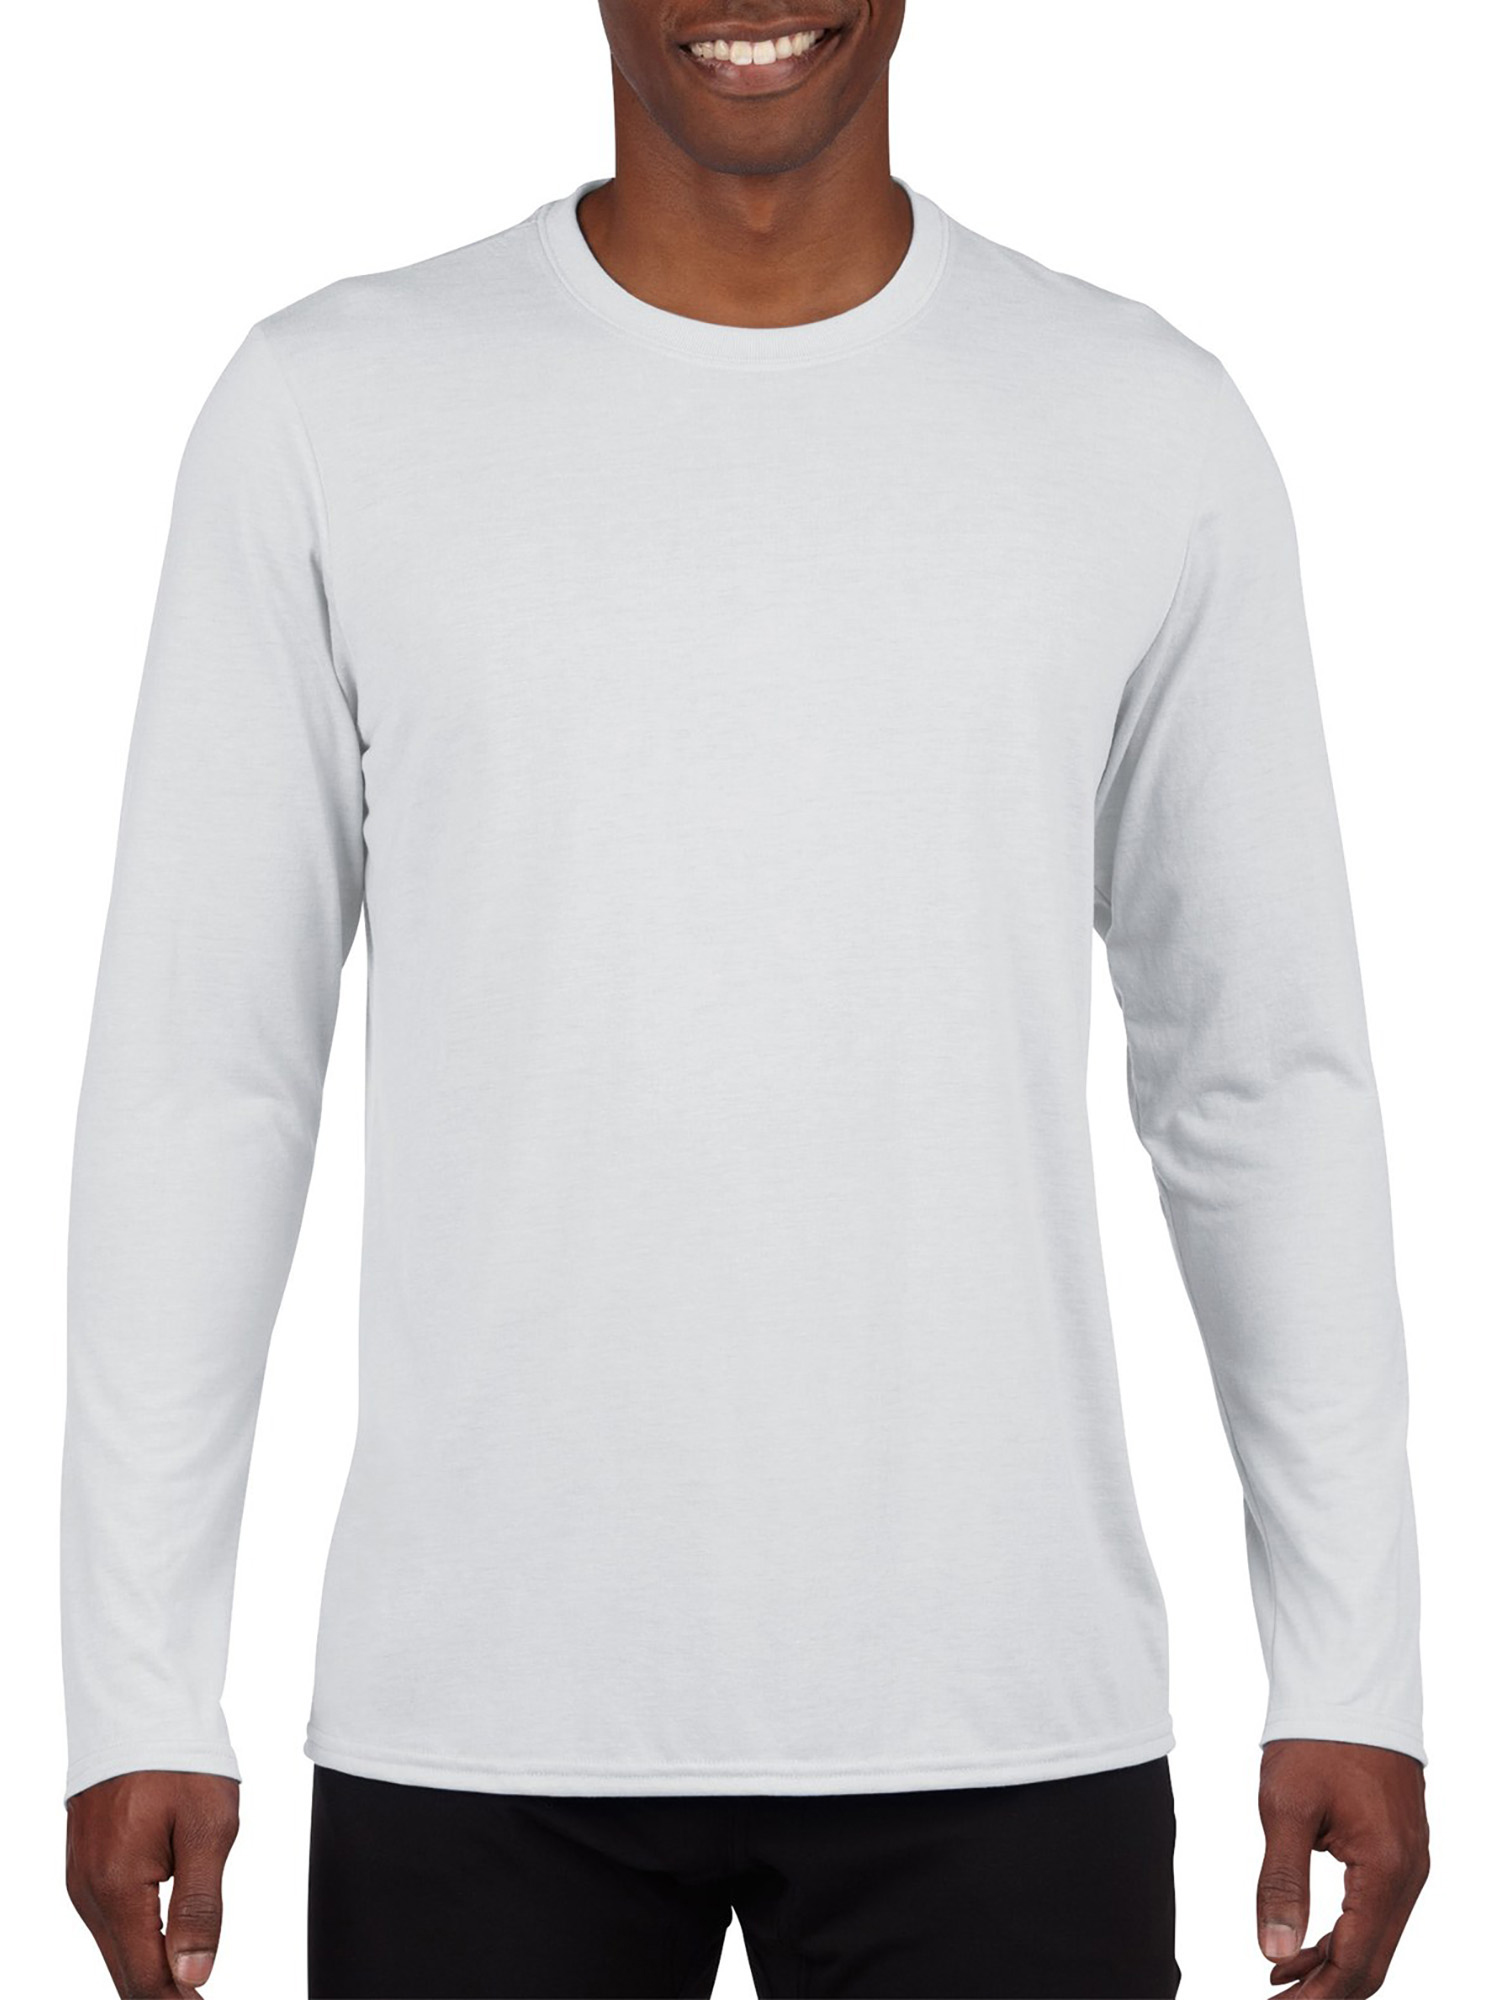 Big Mens AquaFX Performance Long Sleeve T-Shirt, 2XL